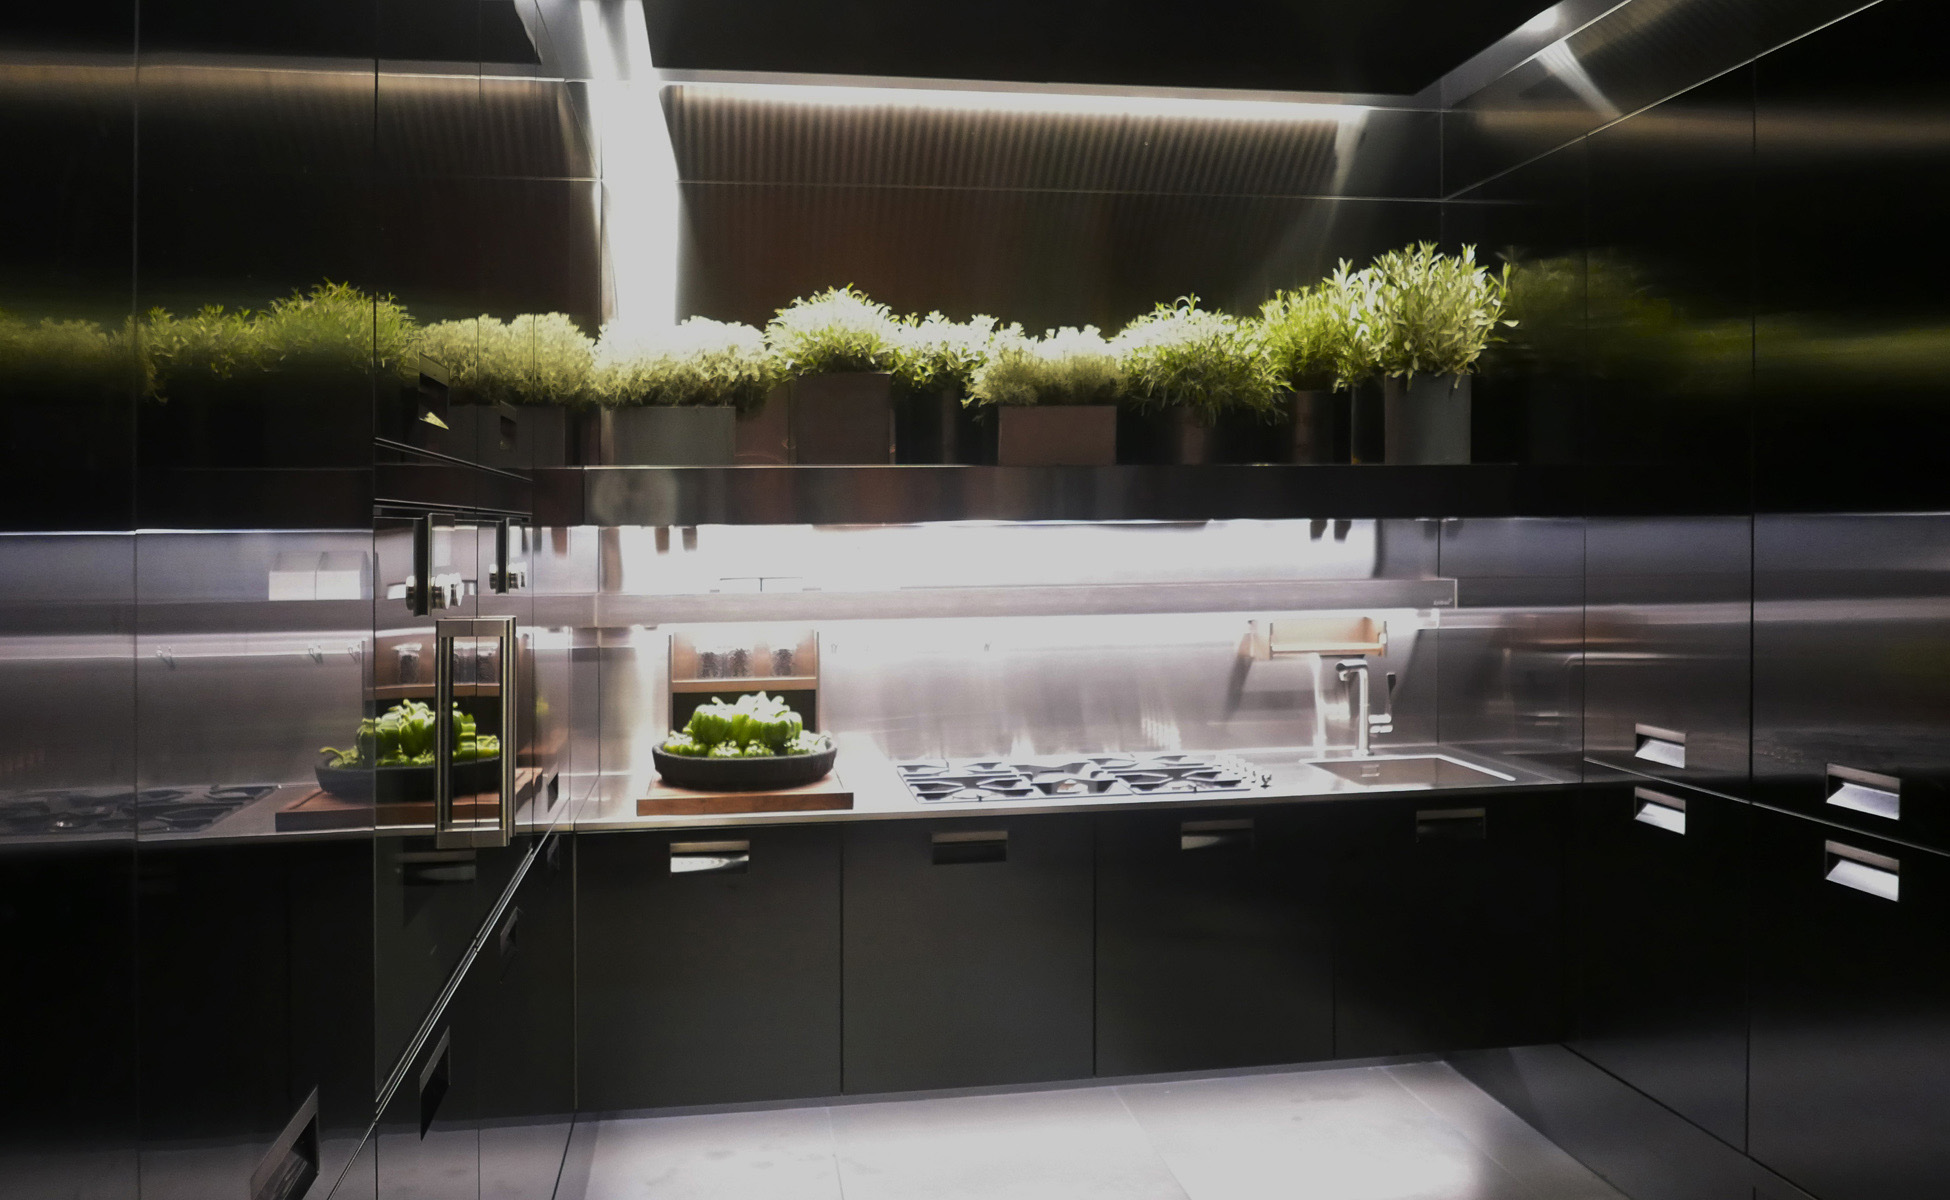 12 arclinea eurocucina by steidten+ in berlin